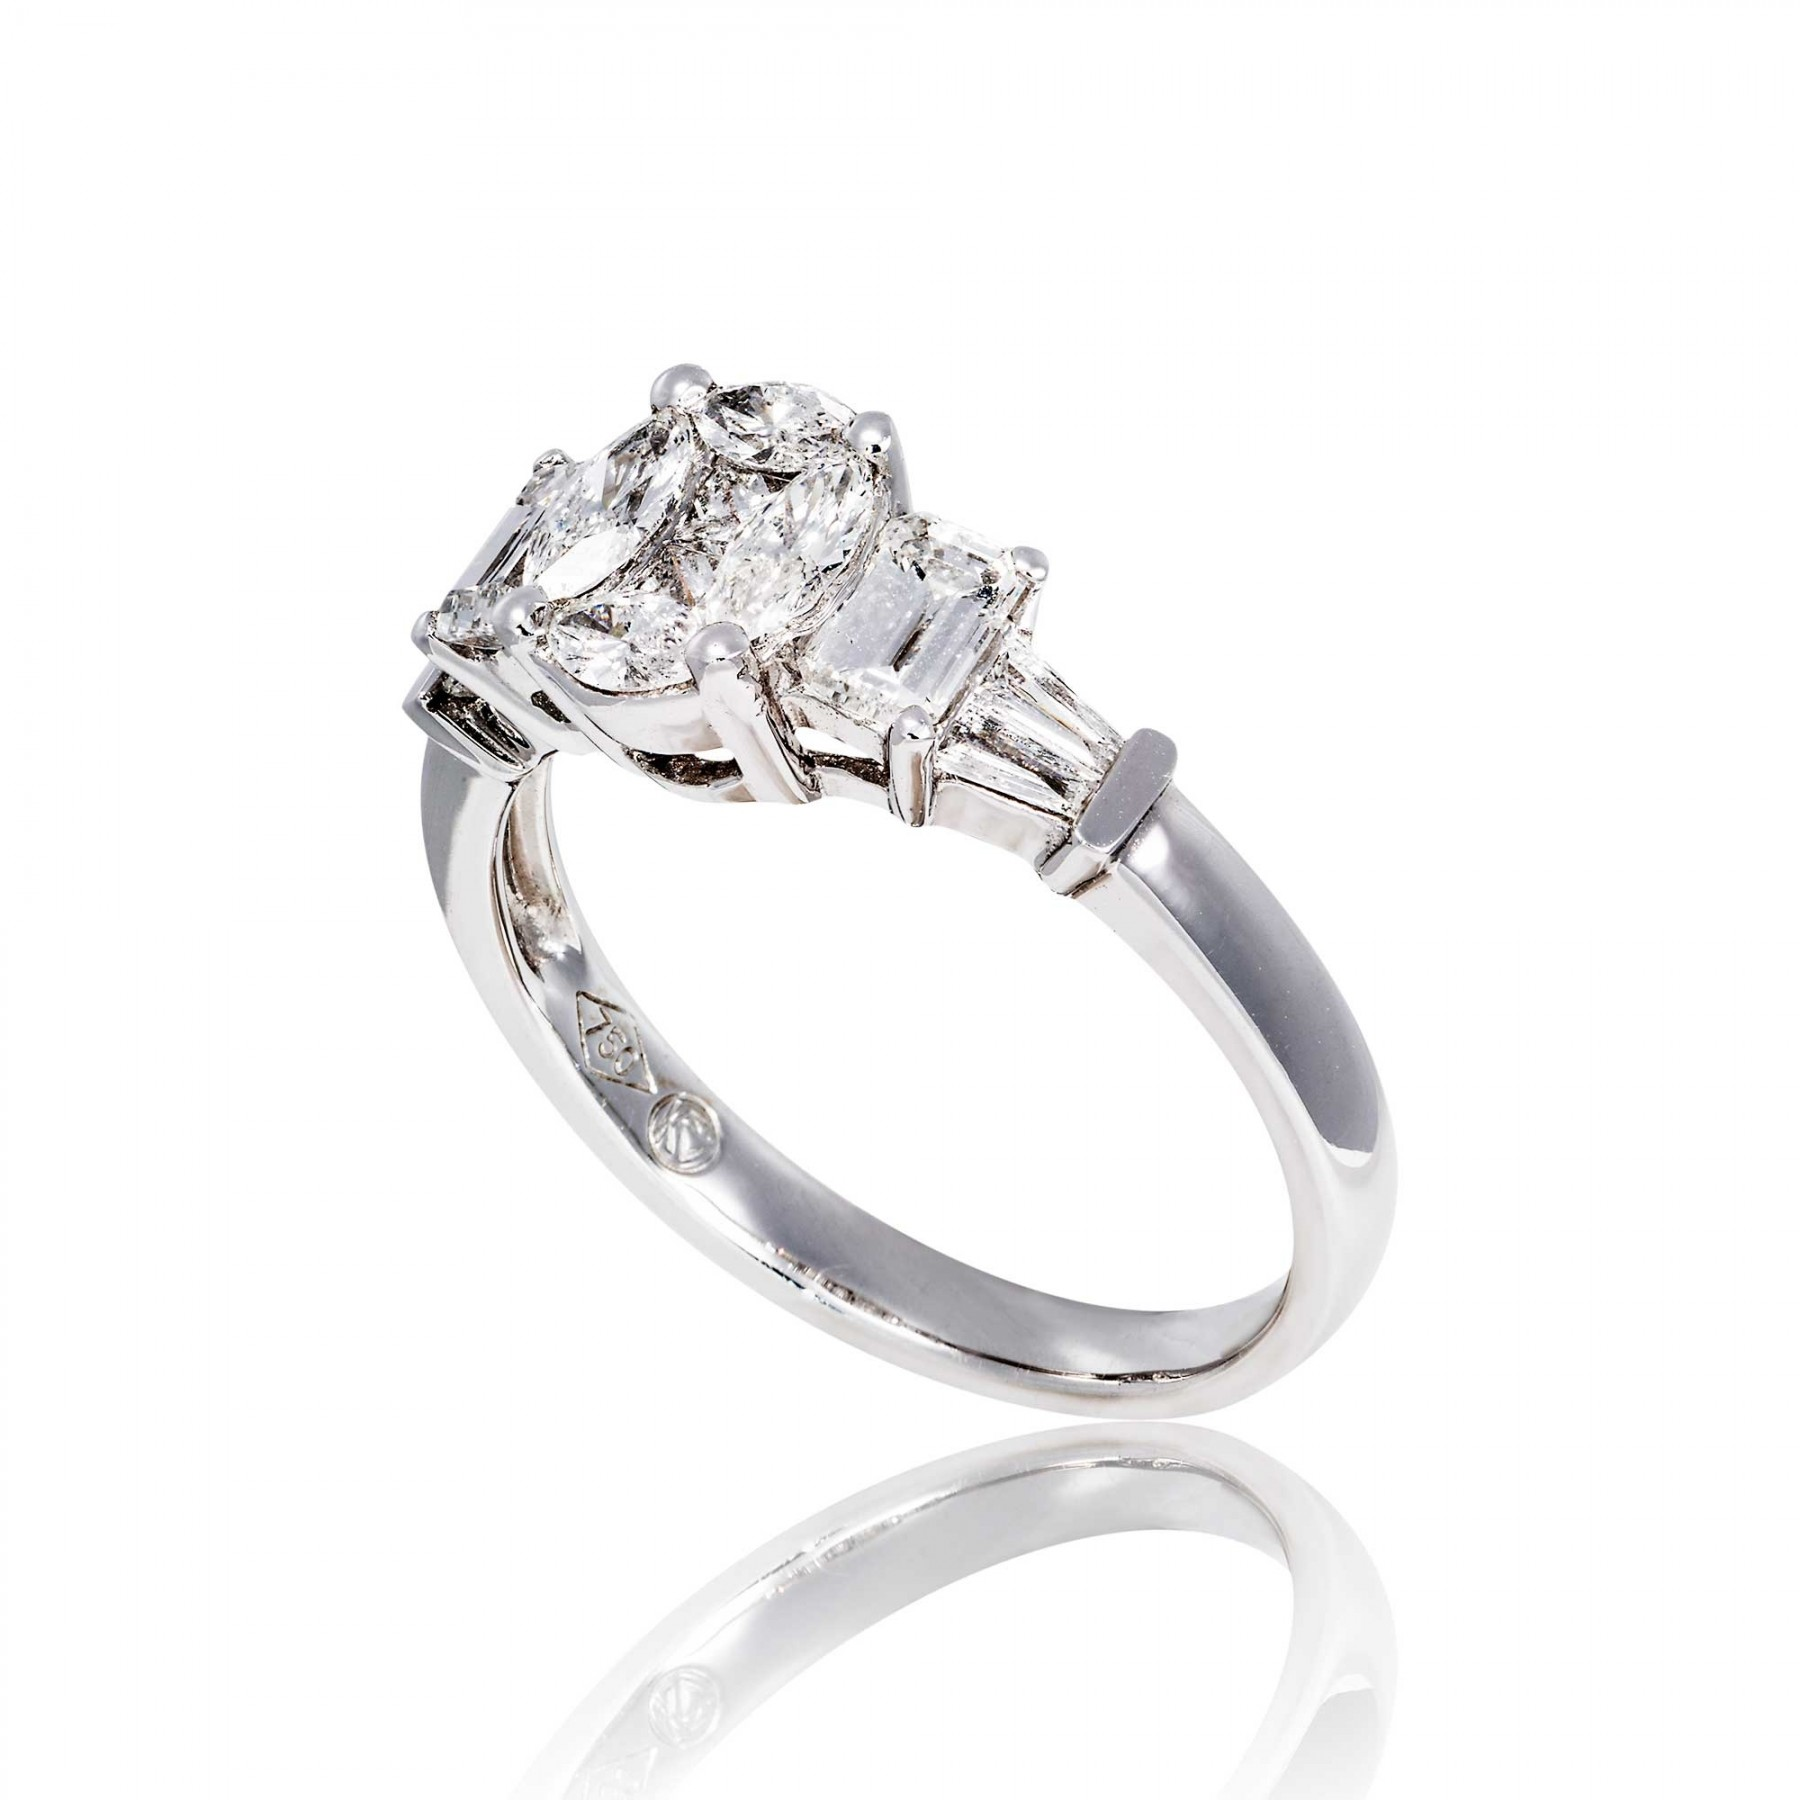 Dreamy engagement rings by Skaras Jewels